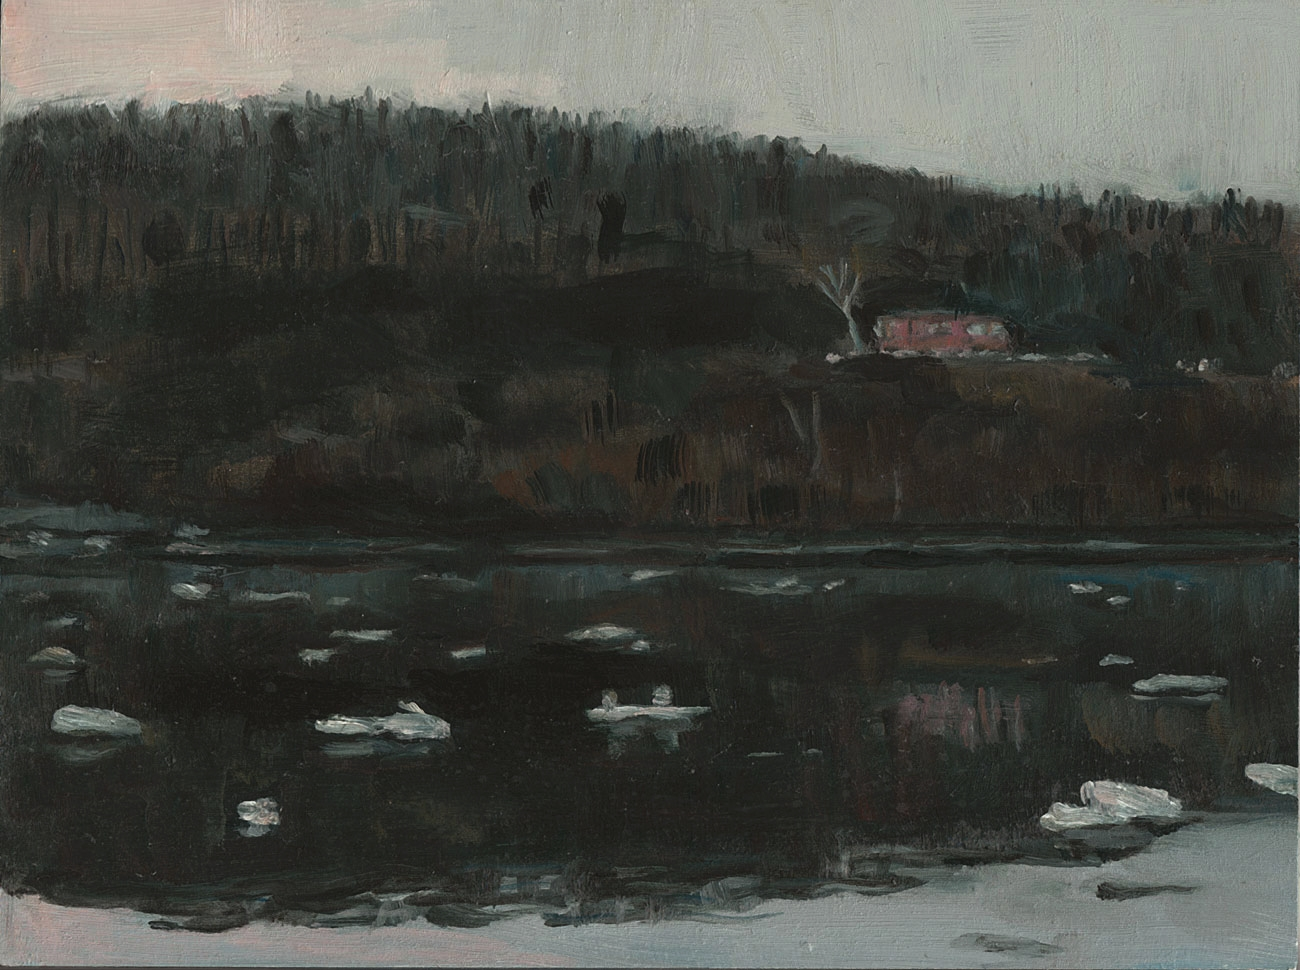 Hudson River from Poughkeepsie